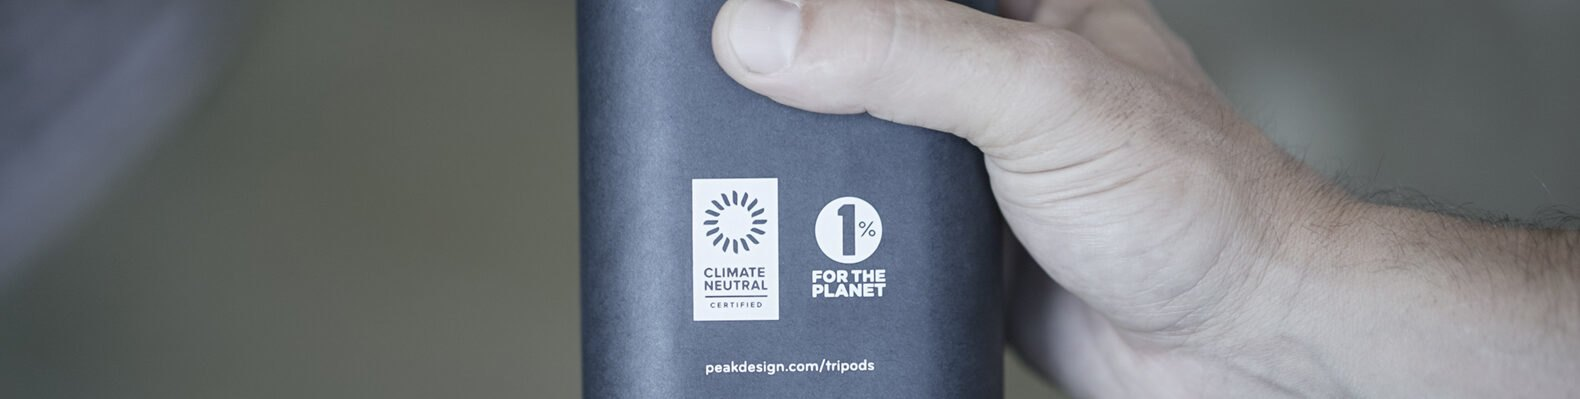 person holding container with logos for Climate Neutral Certification and 1% for the Planet